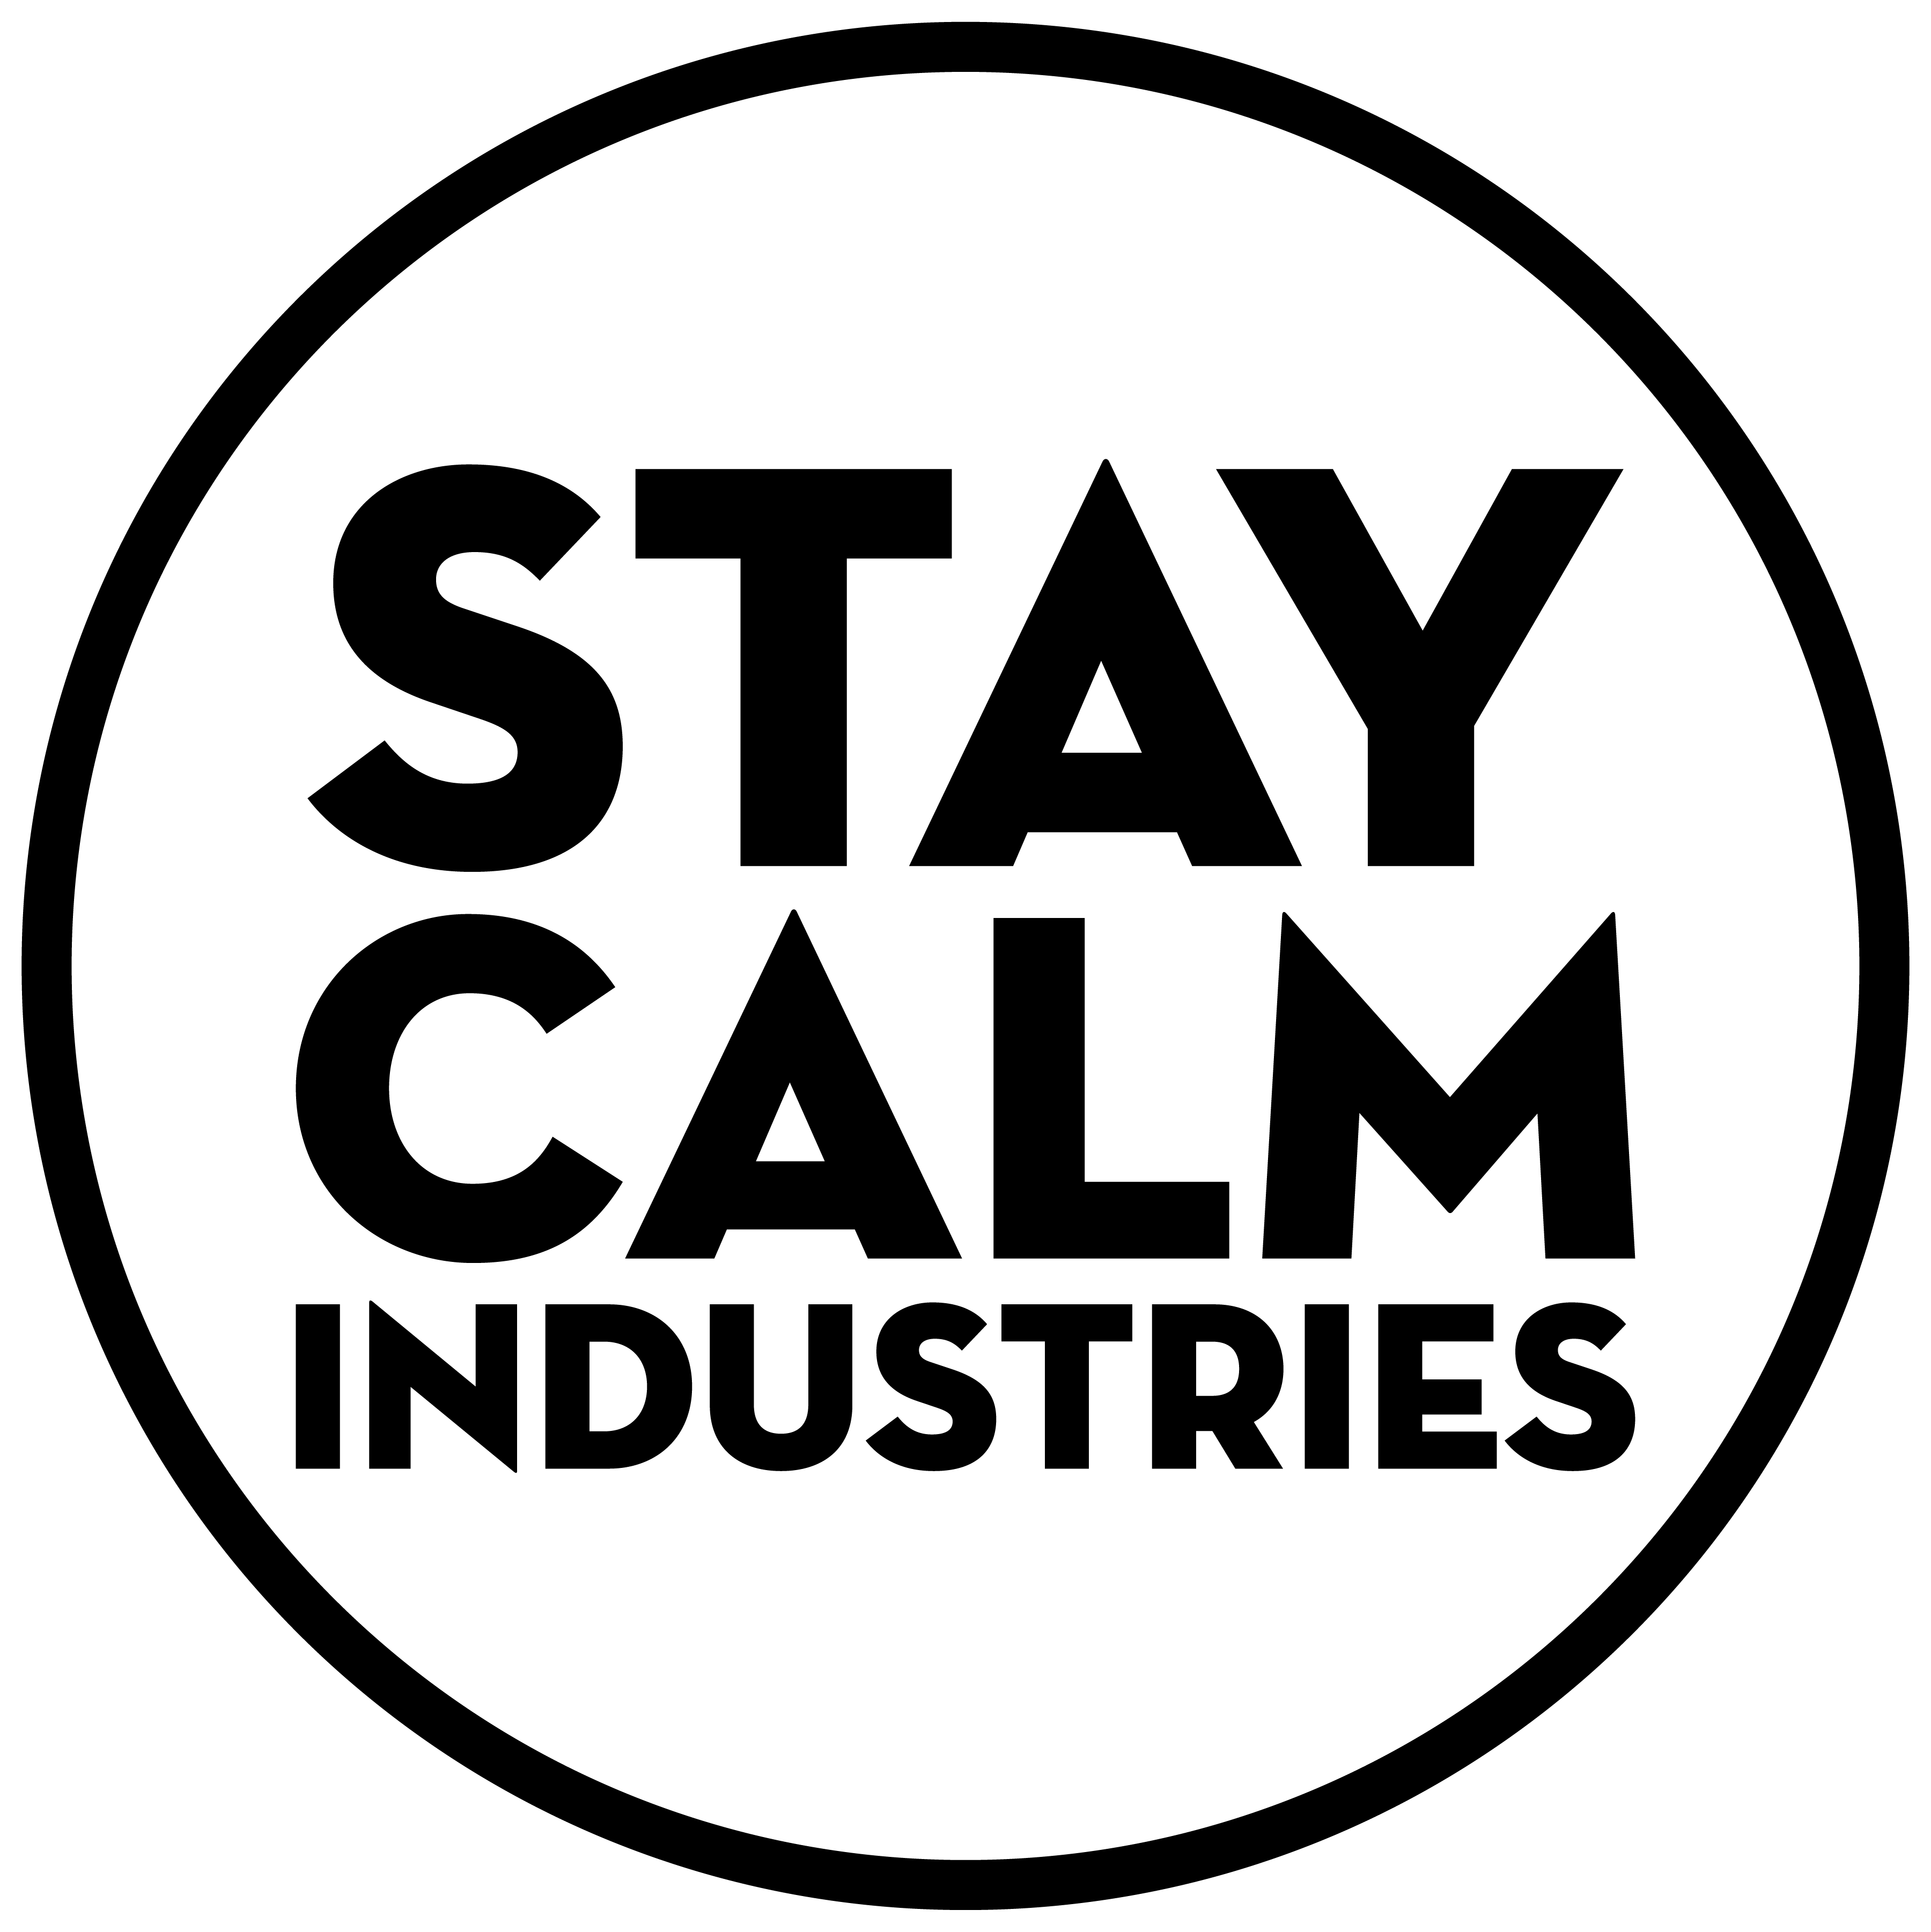 Stay Calm Industries Logo